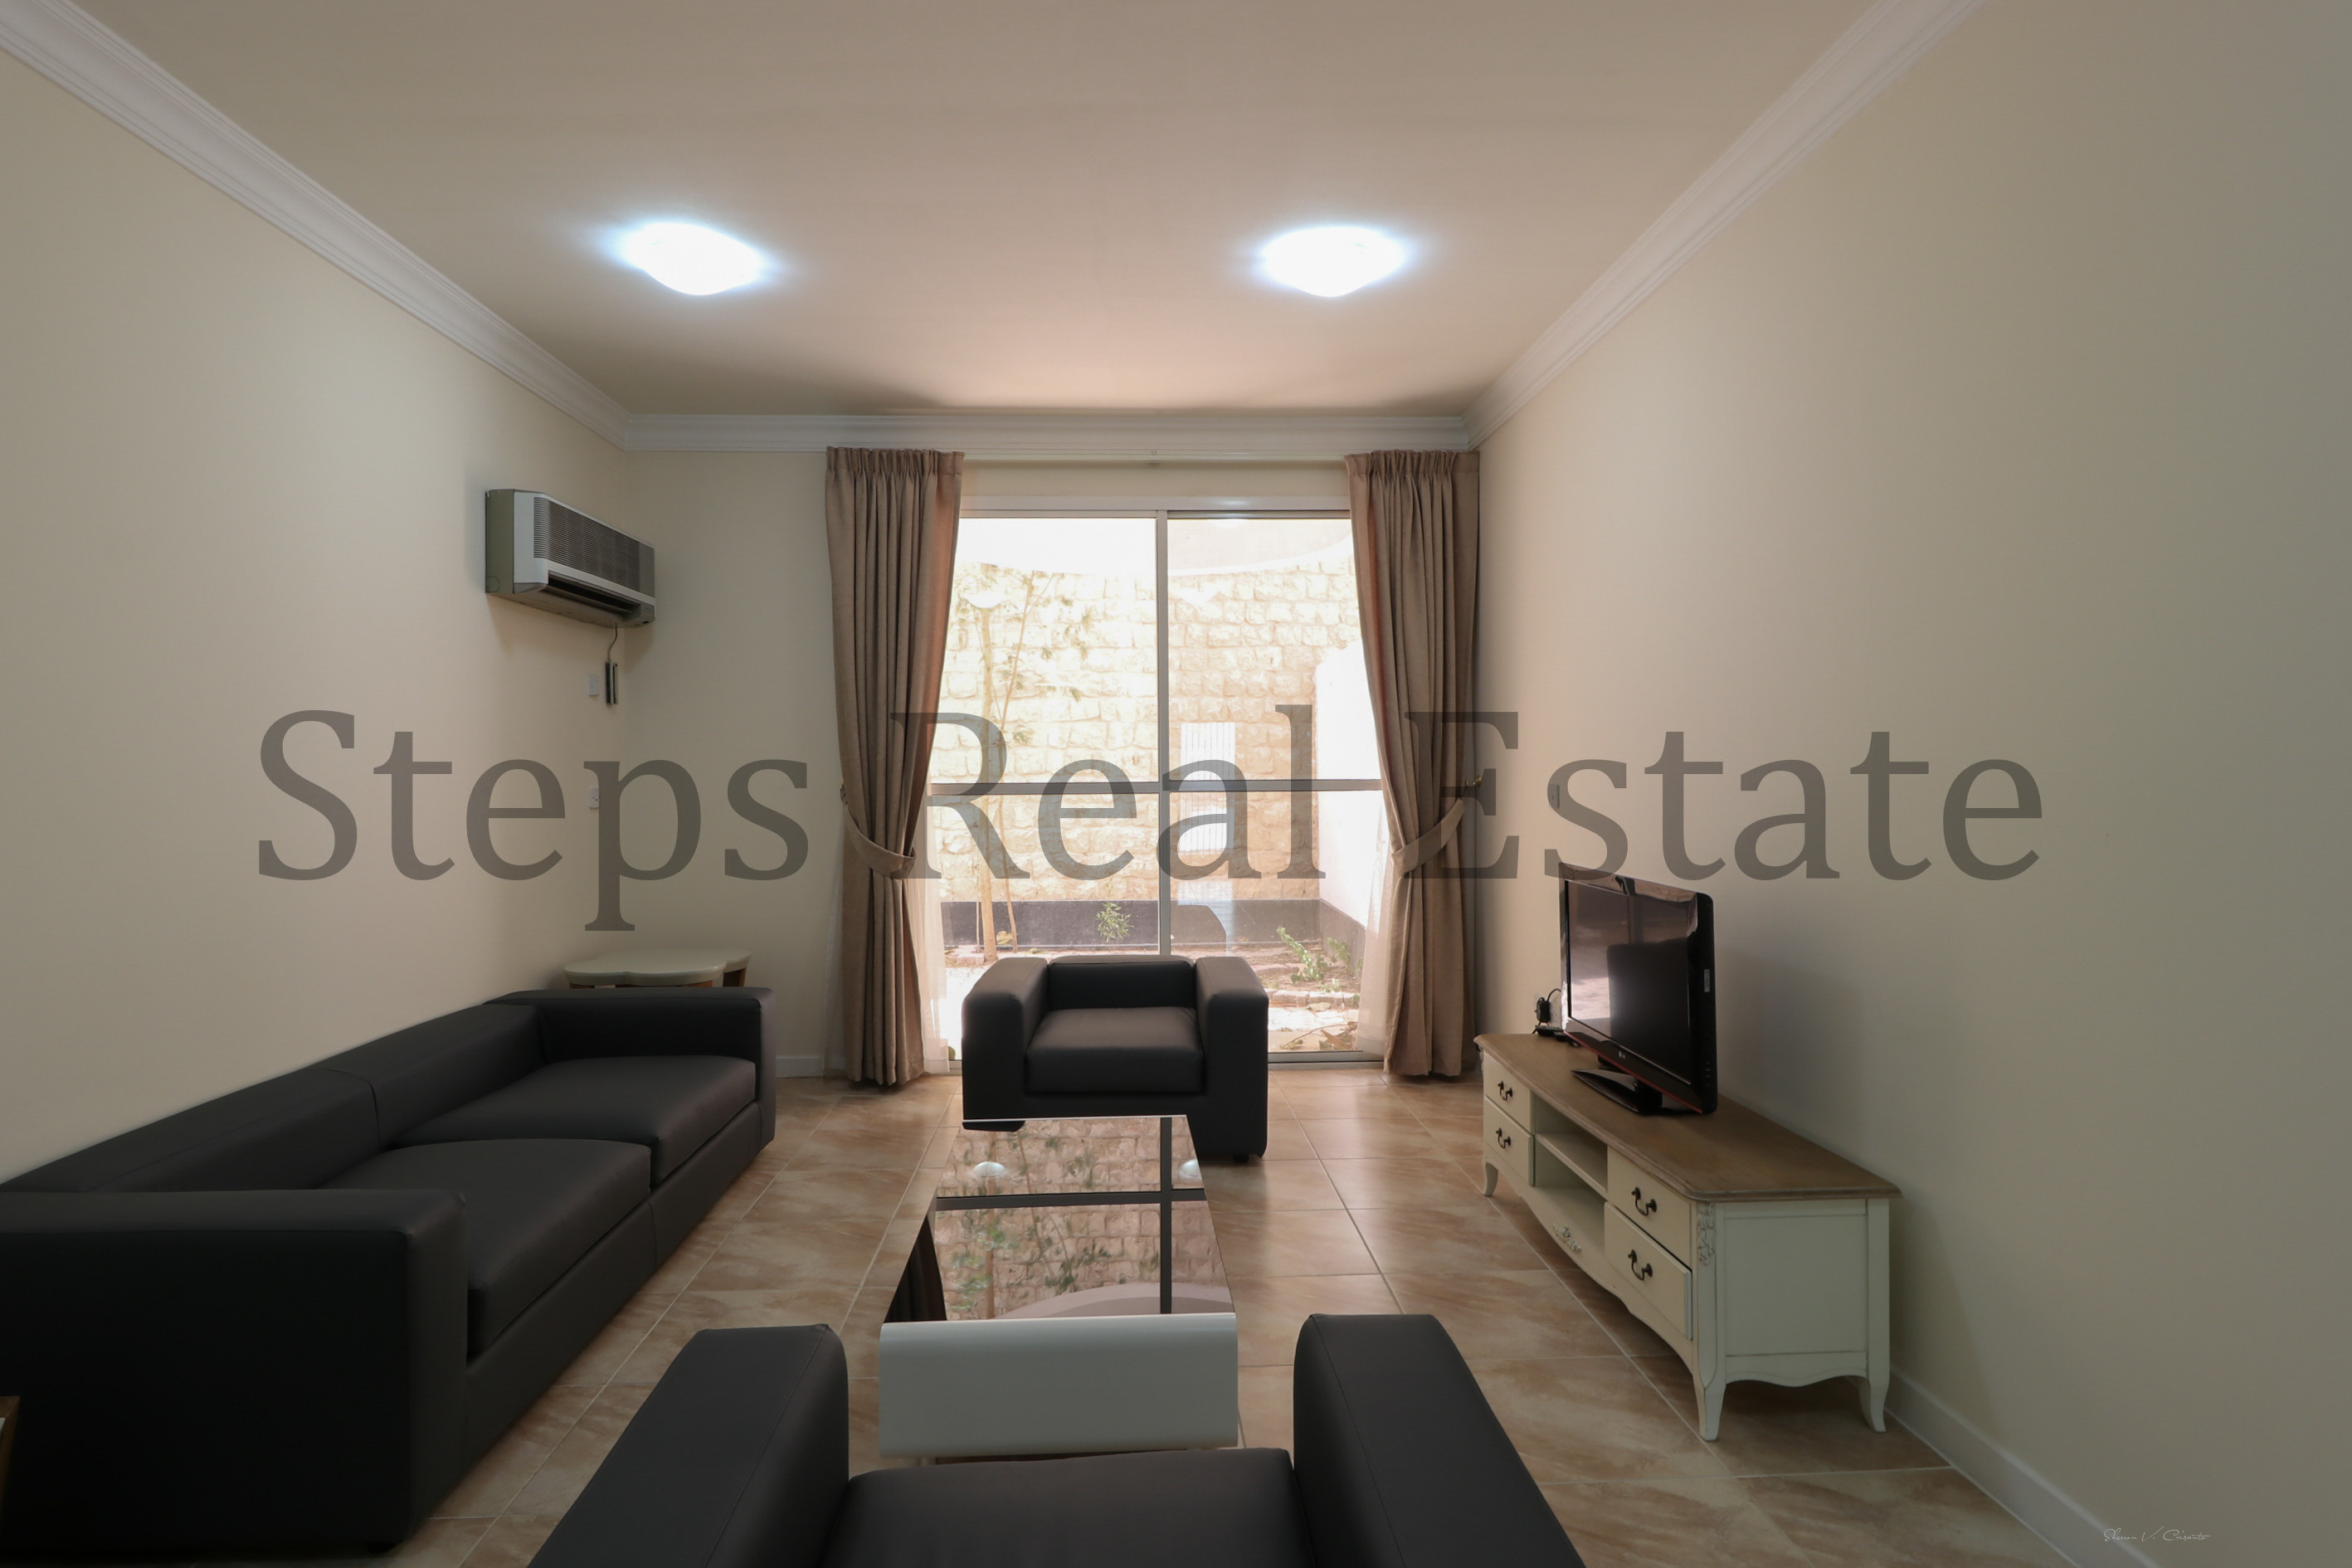 Steps Real Estate:Villa U0026 Apartment For Rent U0026 Sale In Qatar